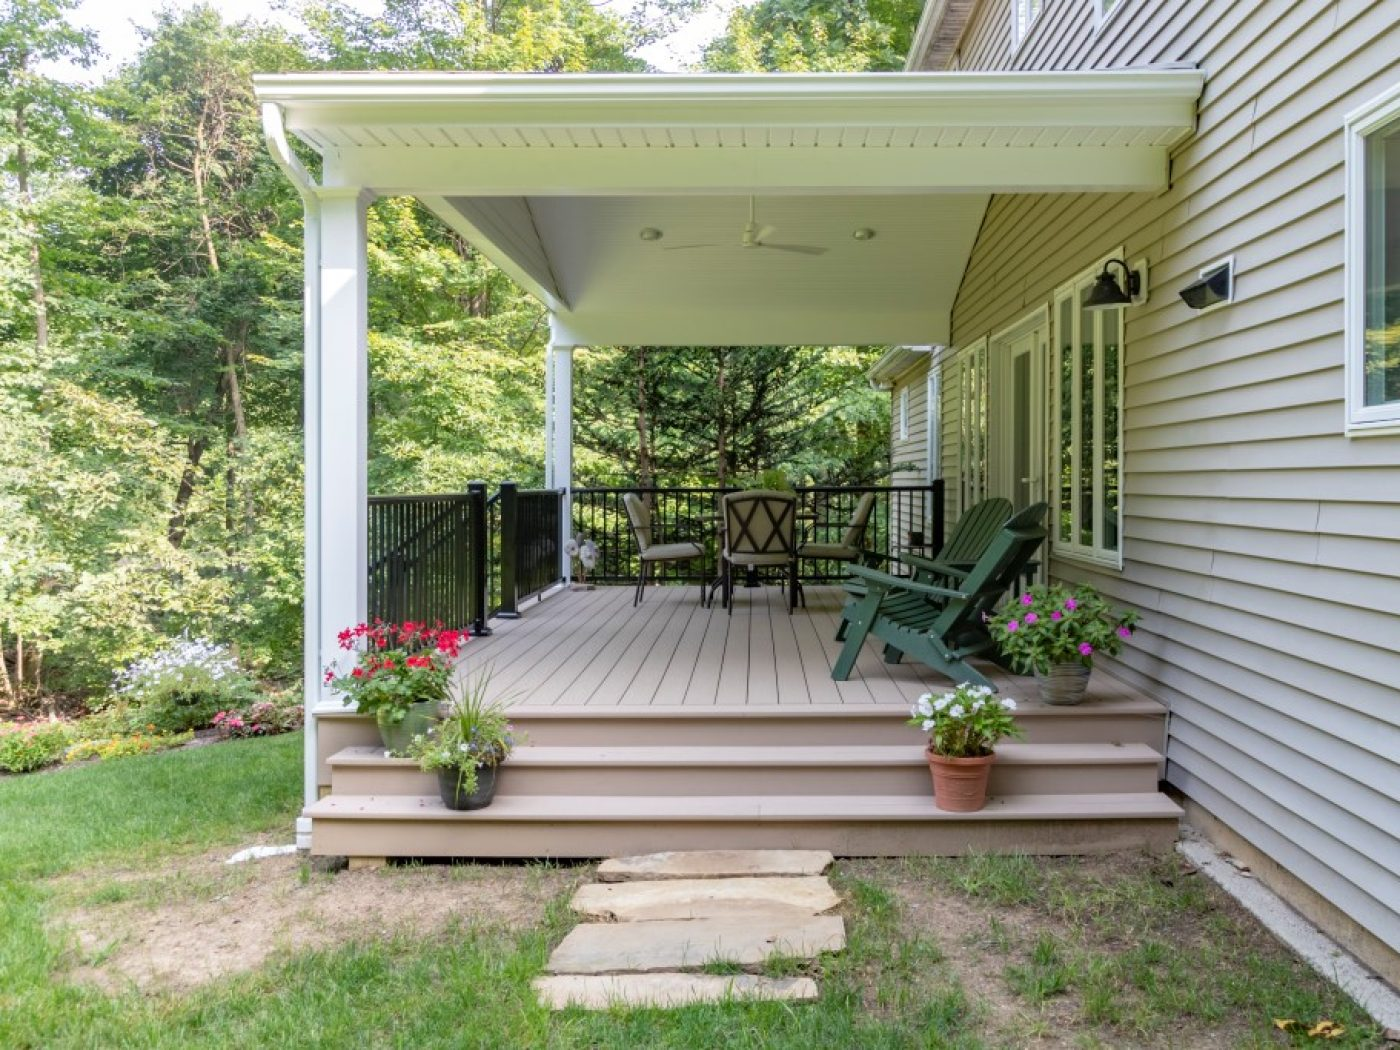 Composite Decking Company Serving Lancaster, Decks, Chester County PA